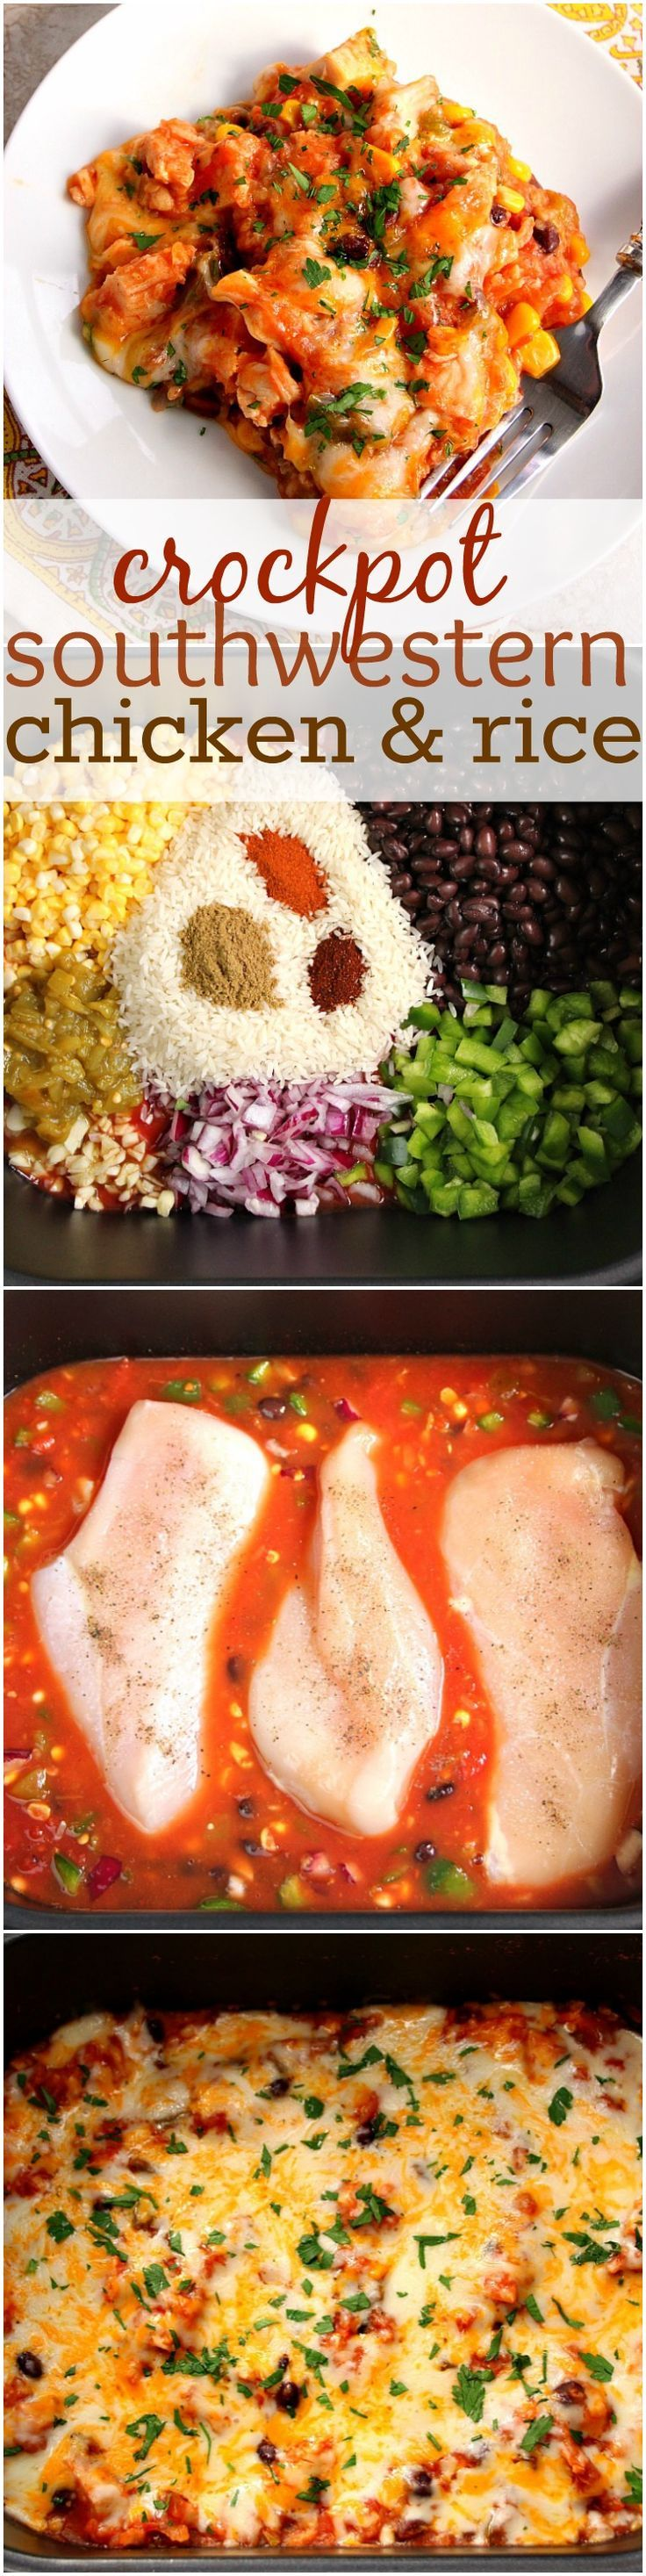 Easy crock pot whole chicken and rice recipes